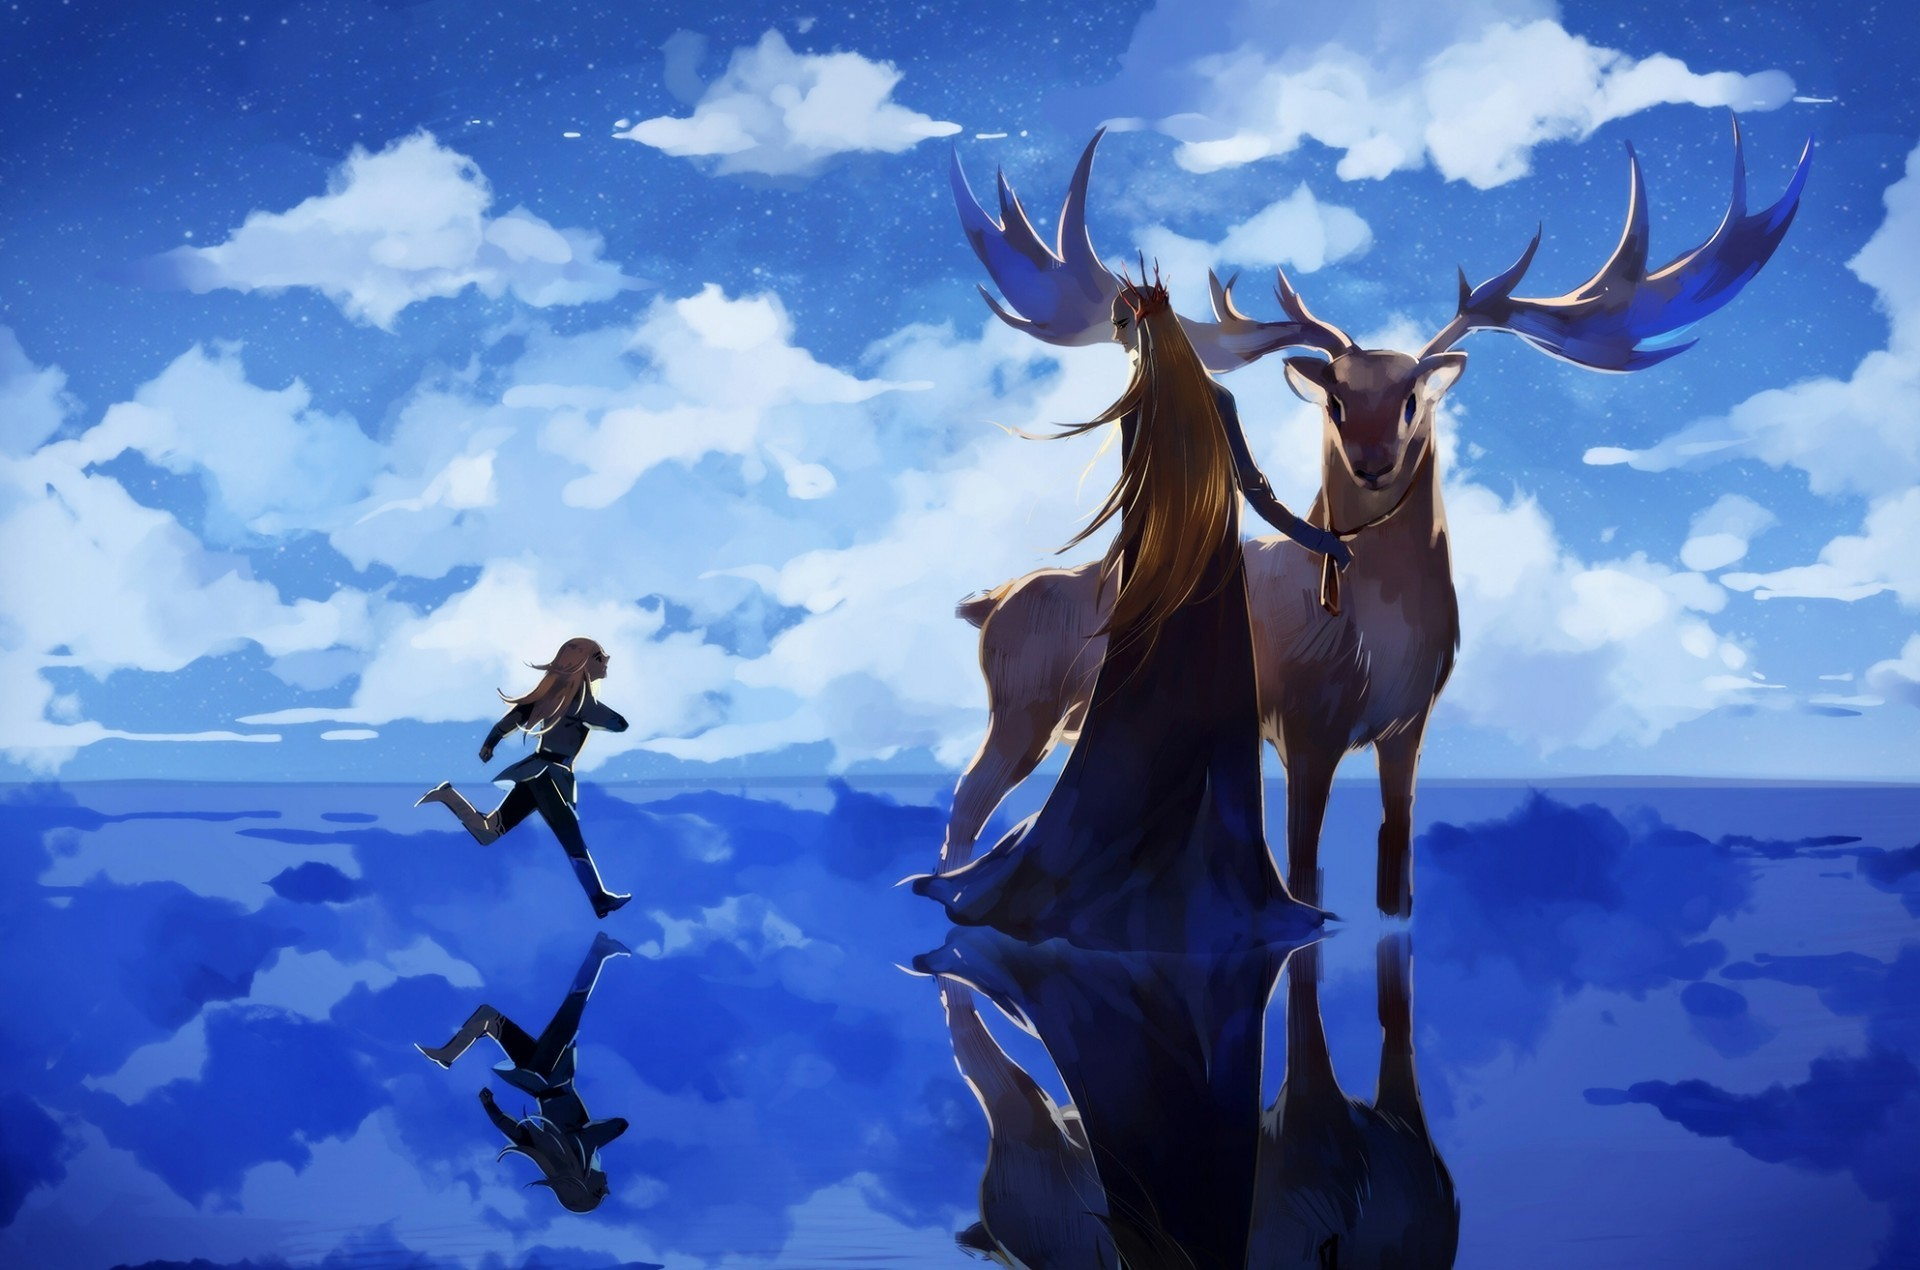 1920x1270 The Lord Of The Rings, Anime Style, Elf, Thranduil, Deer, Legolas